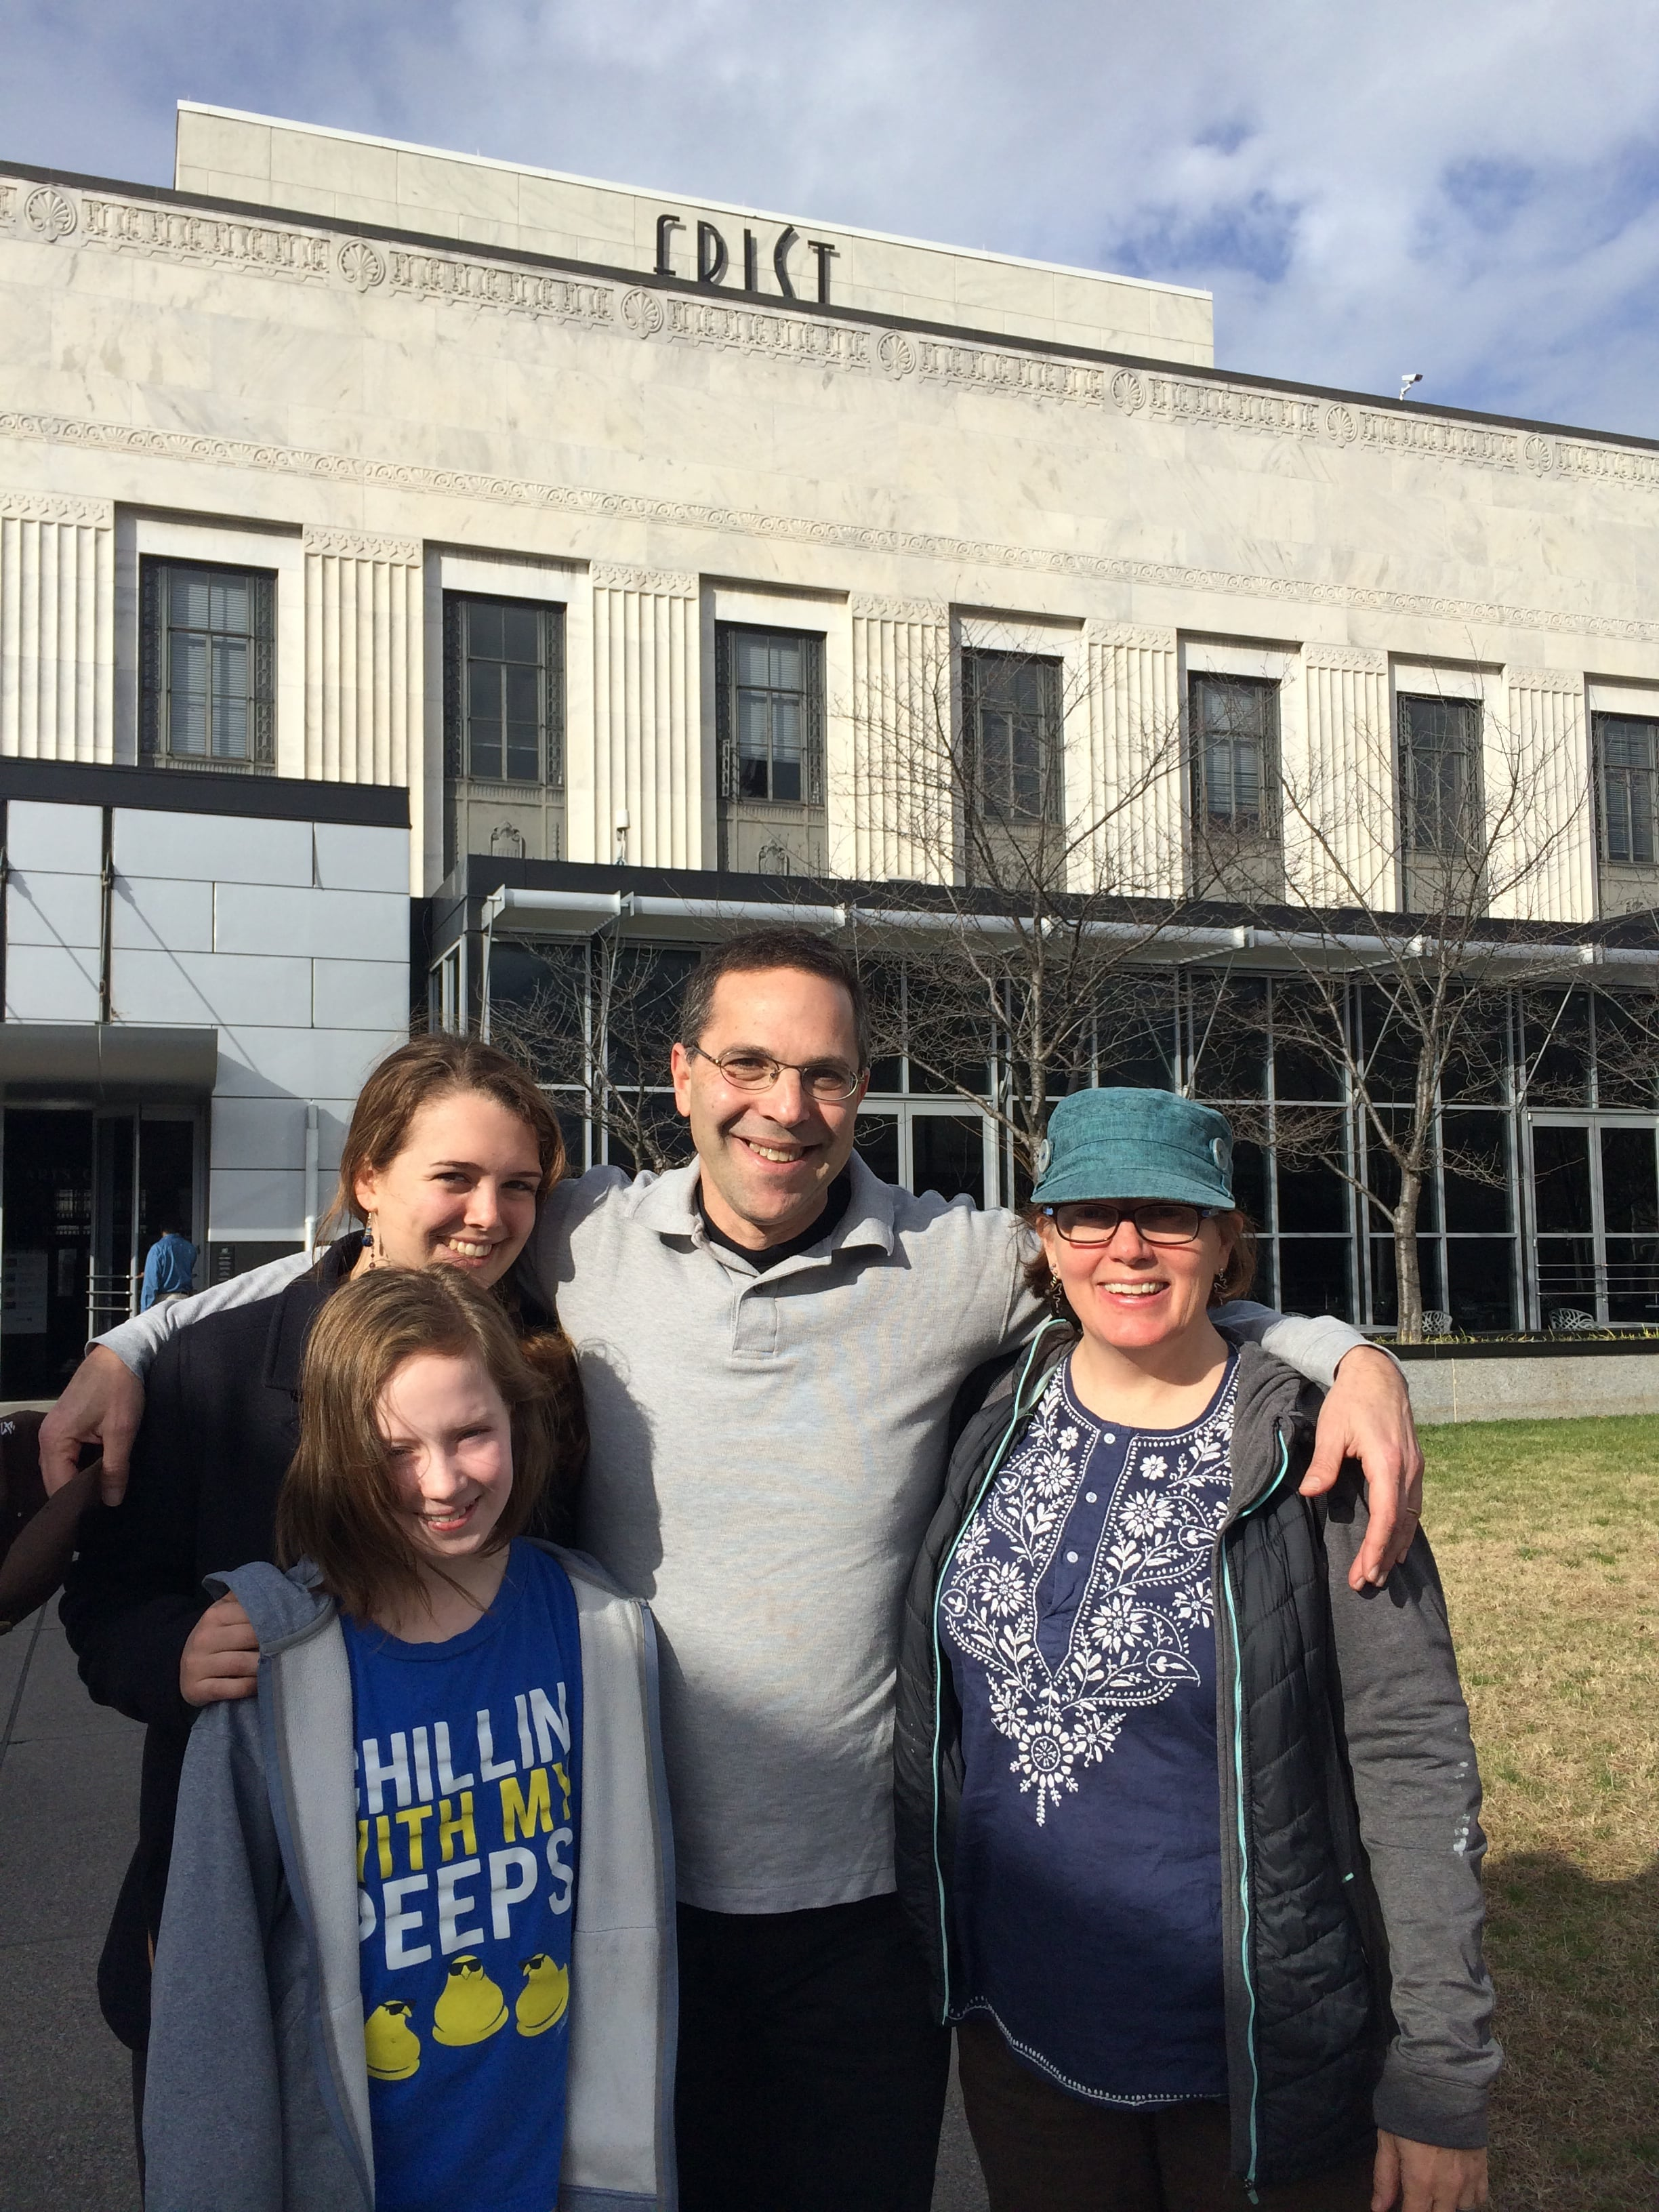 Lily, Jimmy, my sister and niece join me and Michelangelo at the Frist Center for the Visual Arts, Nashville, TN, Dec 2016.